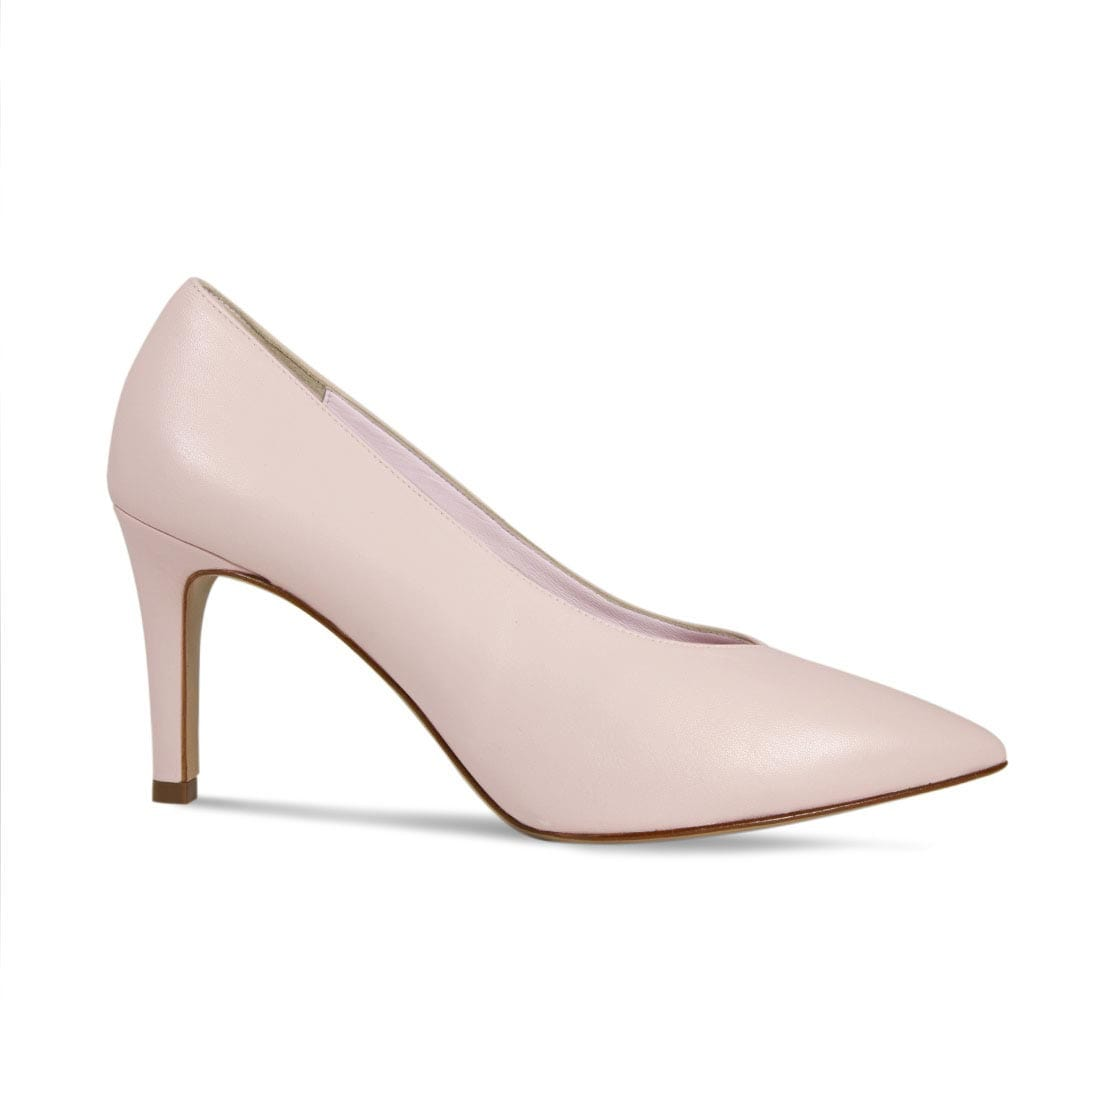 Blush Leather High Heeled Pumps